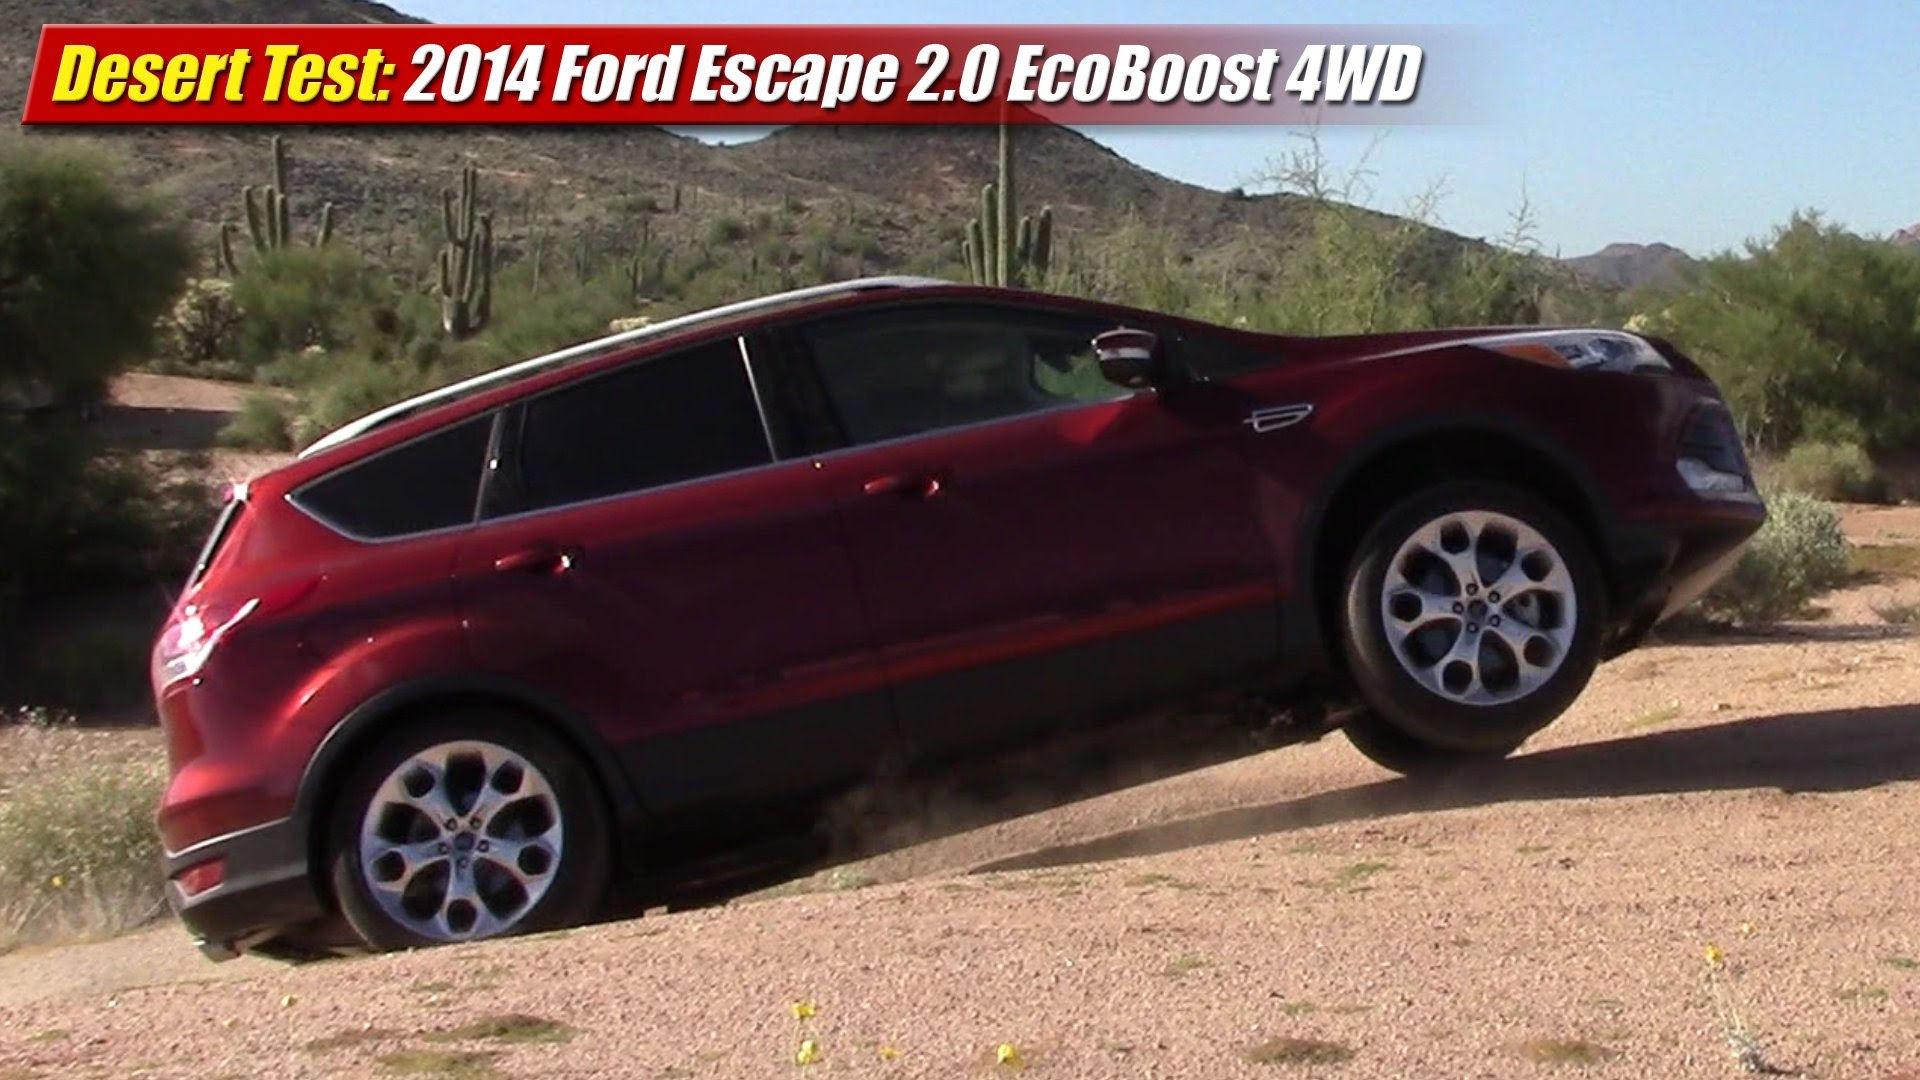 desert test 2014 ford escape 2 0 ecoboost 4wd testdriven tv. Black Bedroom Furniture Sets. Home Design Ideas